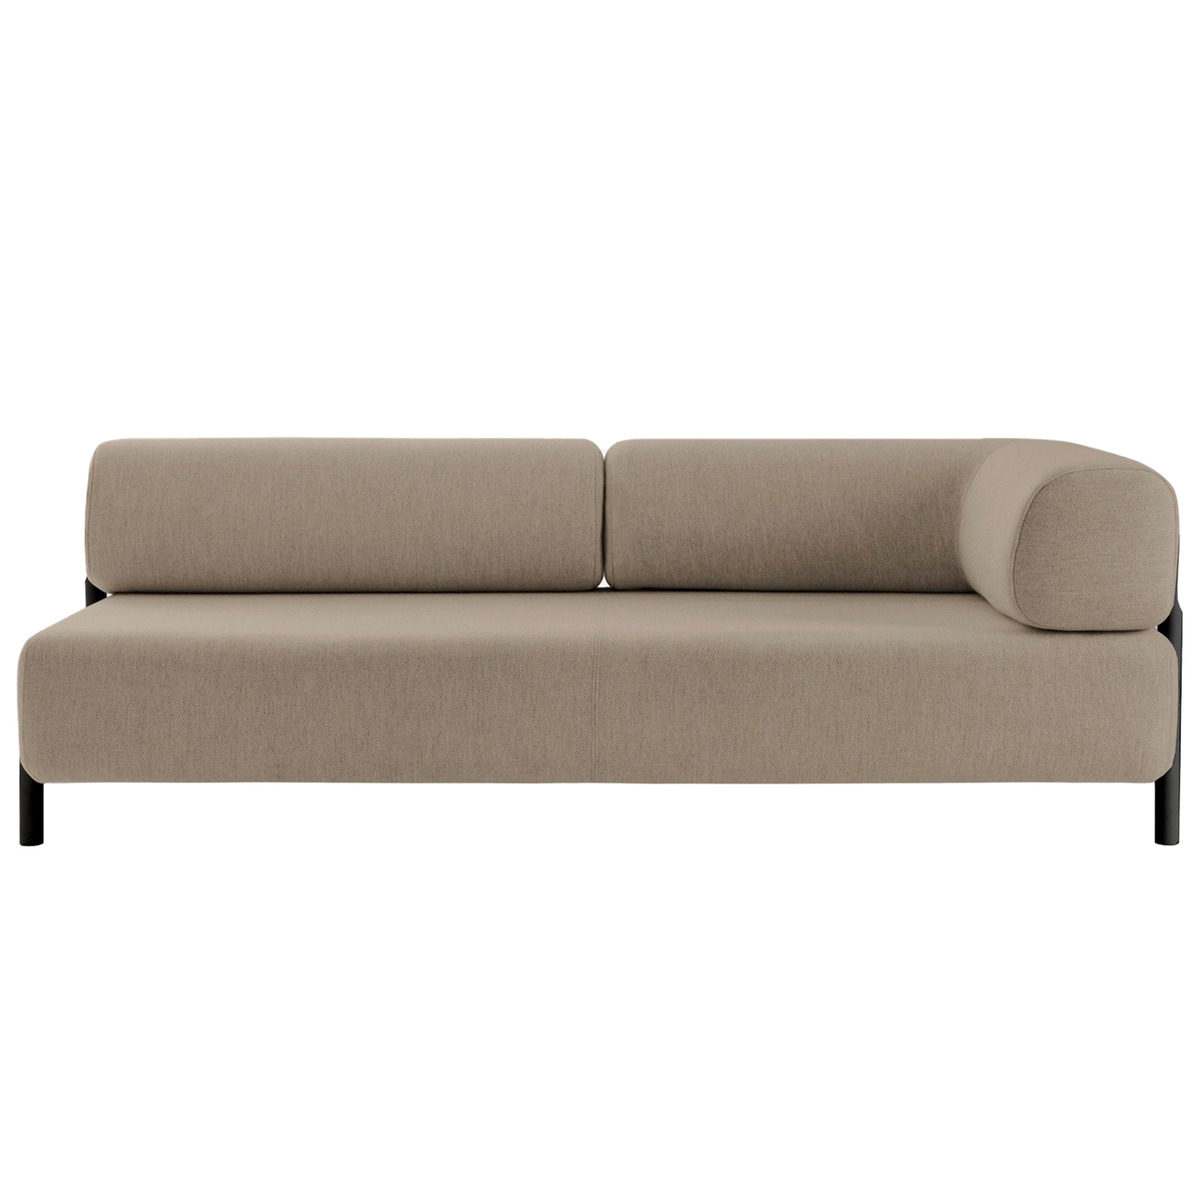 Hem Palo 2-Seater Chaise, Right, Beige